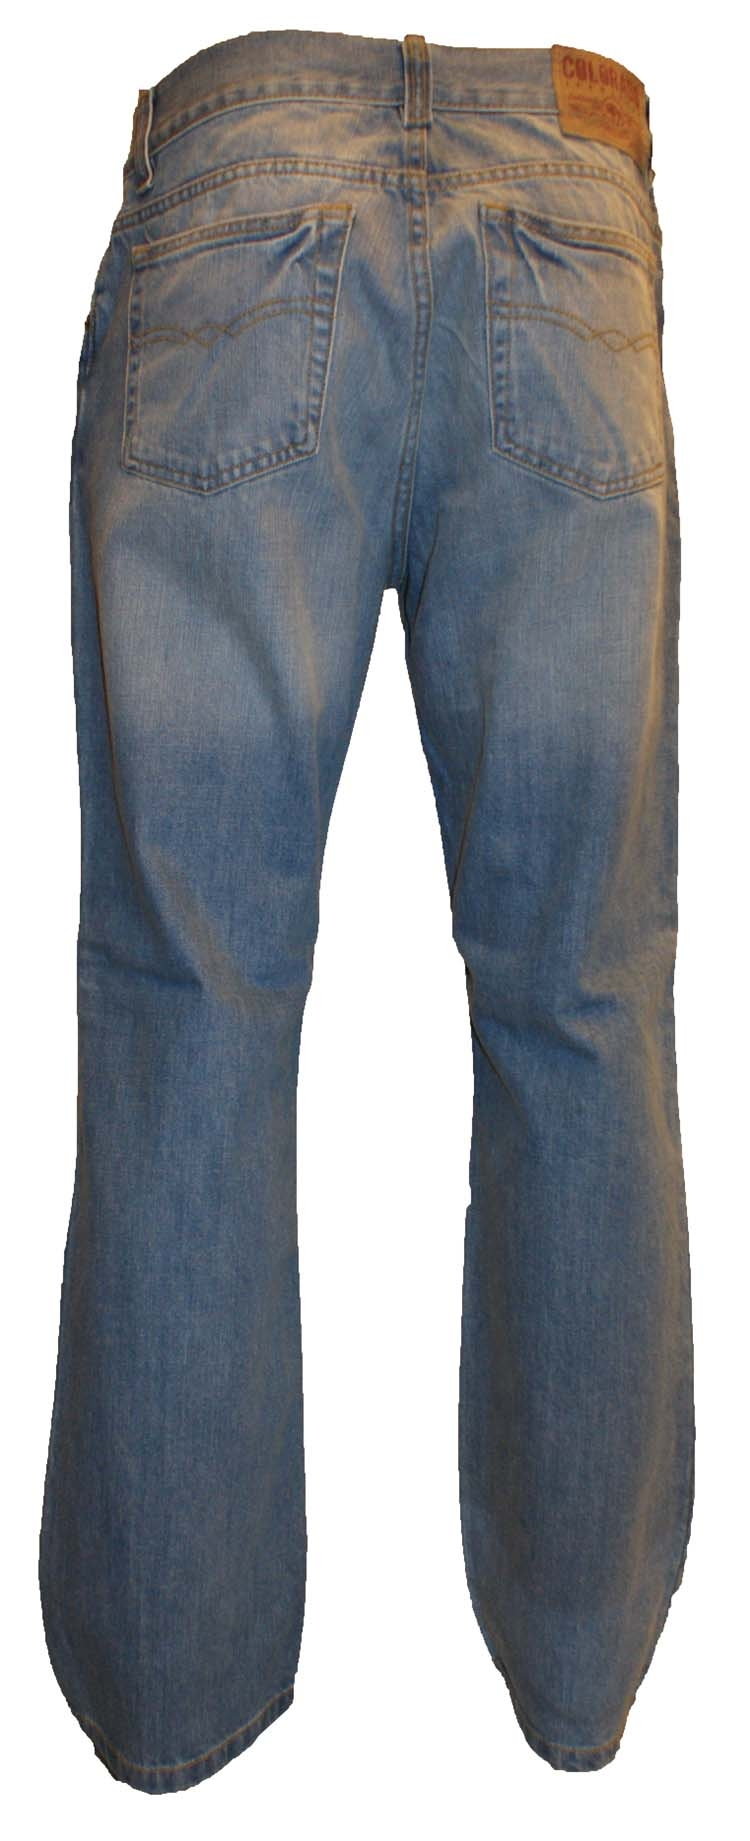 "Colorad jeans  "" Lake ""  Bleach used"